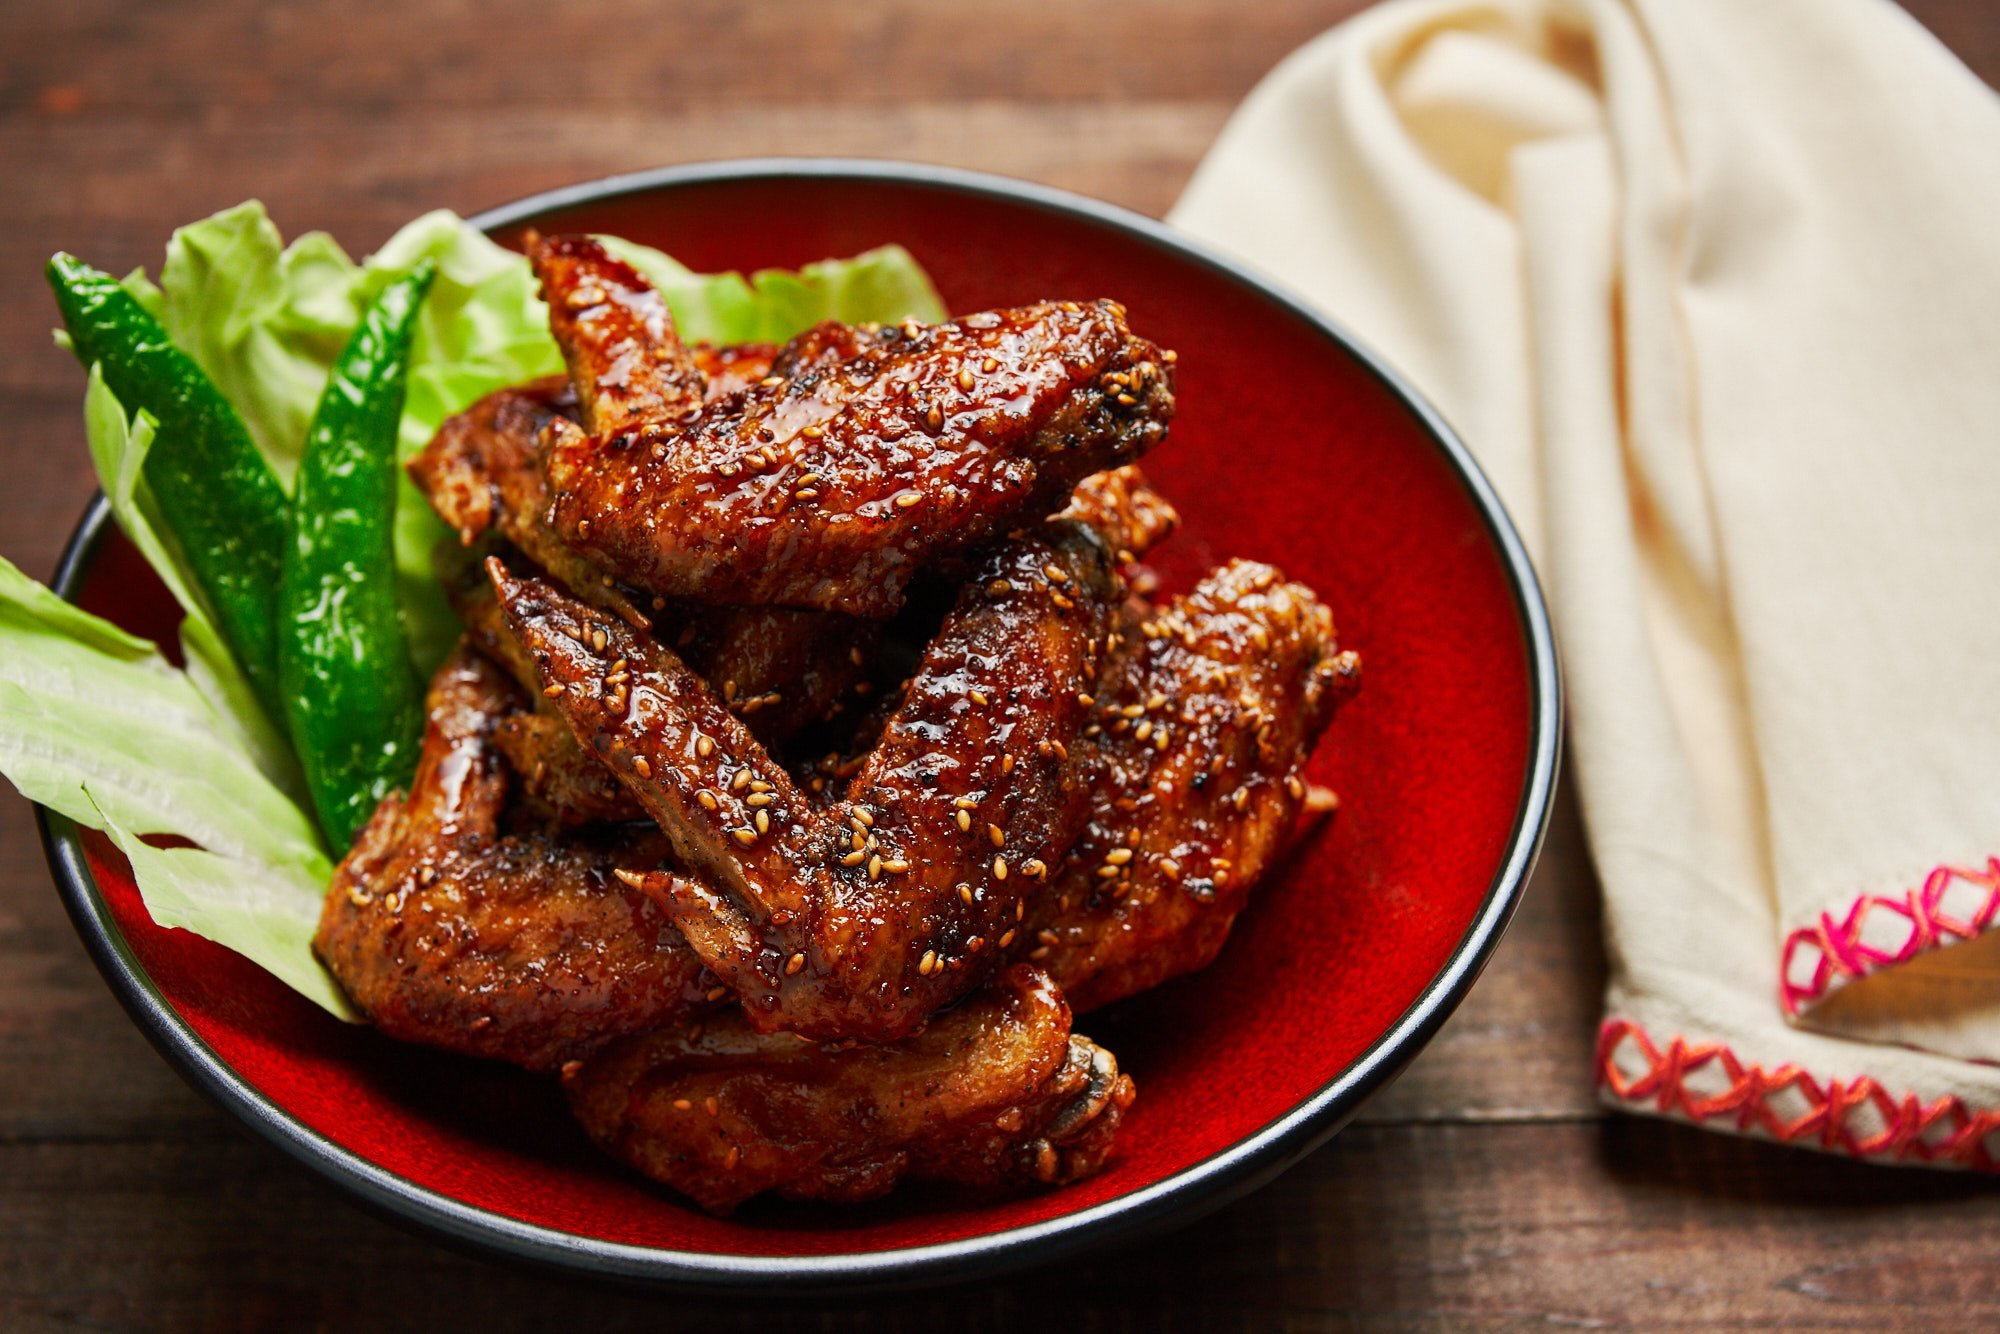 Tebasaki, or Japanese-style buffalo wings are ultra-crisp on the outside and glazed with a sweet and savory sauce that's loaded with garlic, ginger, and black pepper.